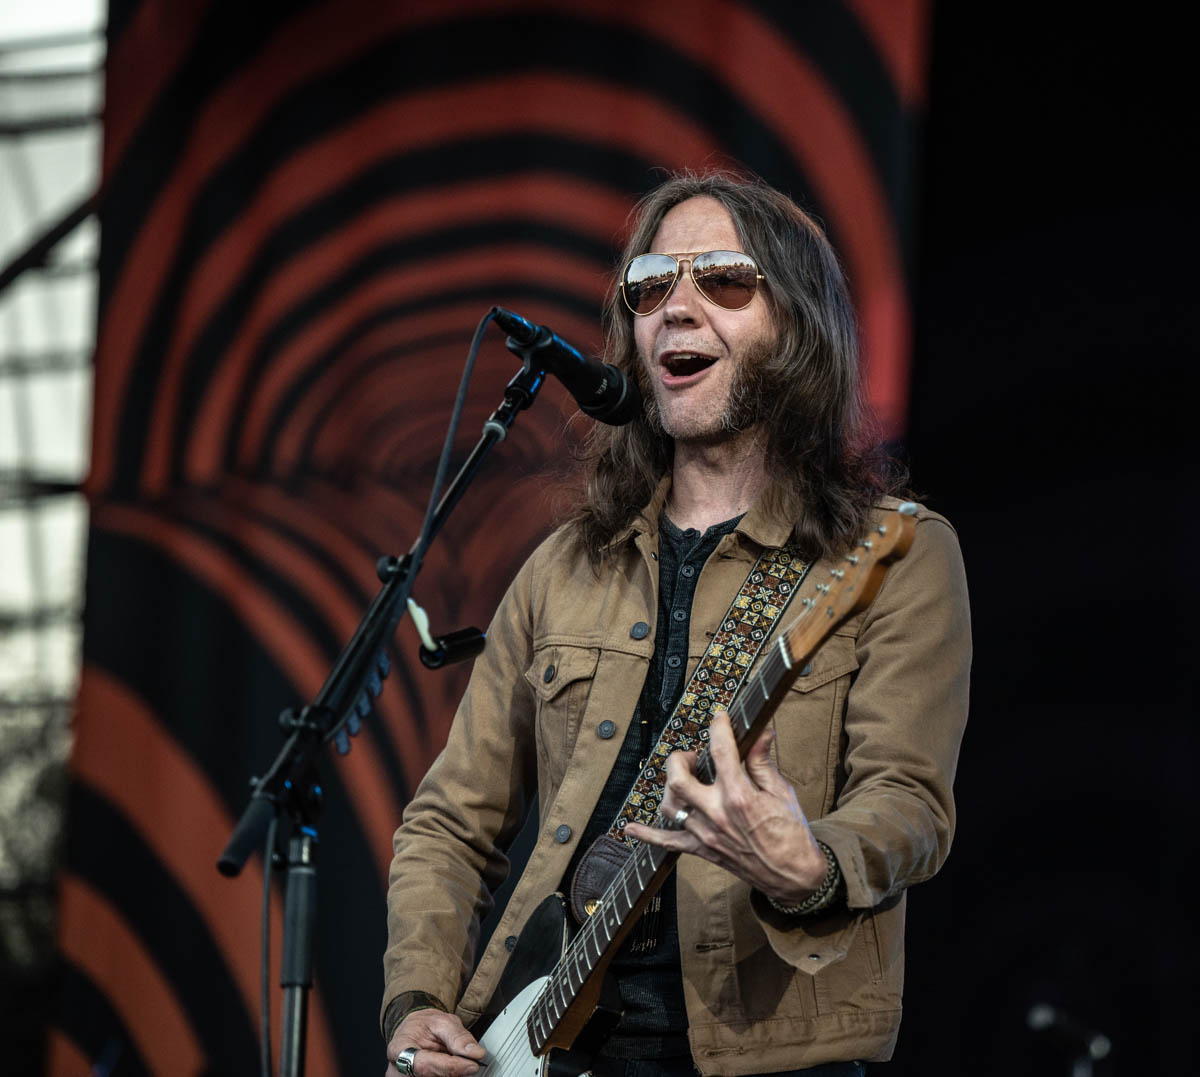 Blackberry Smoke is 2nd act on the Wheels of Soul tour 2019 |  The Lawn at White River State Park | Indianapolis, IN. | Photos by: ©Pix Meyers 2019